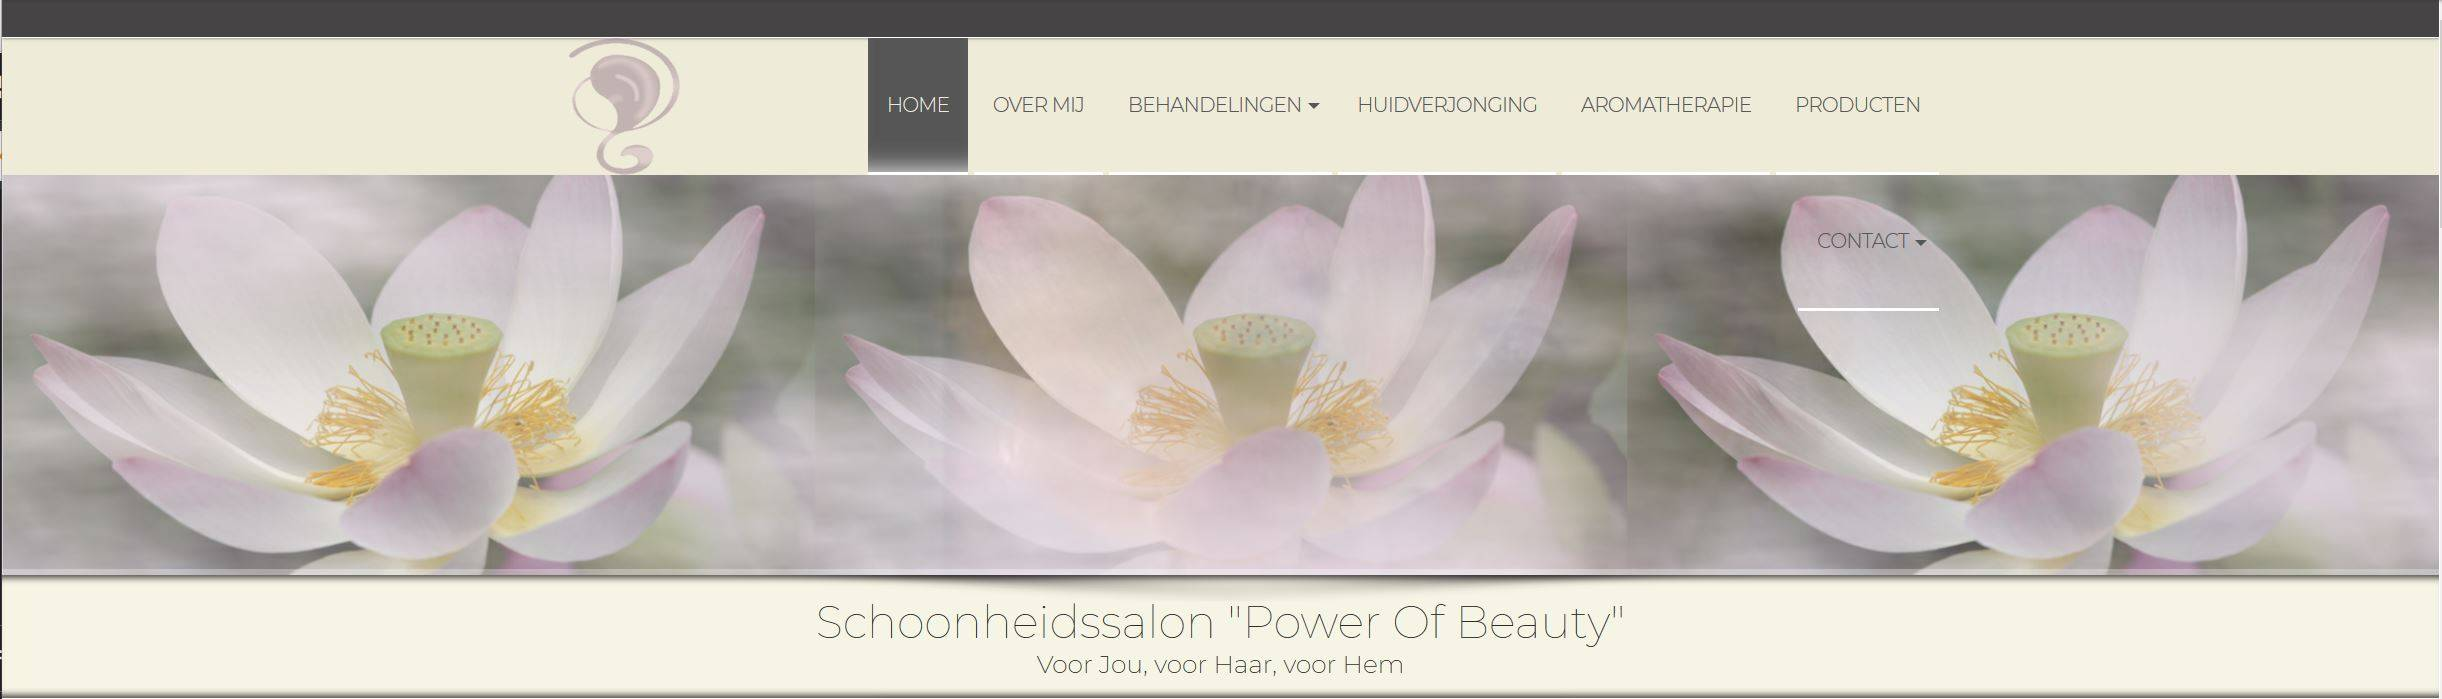 Schoonheidssalon Power Of Beauty